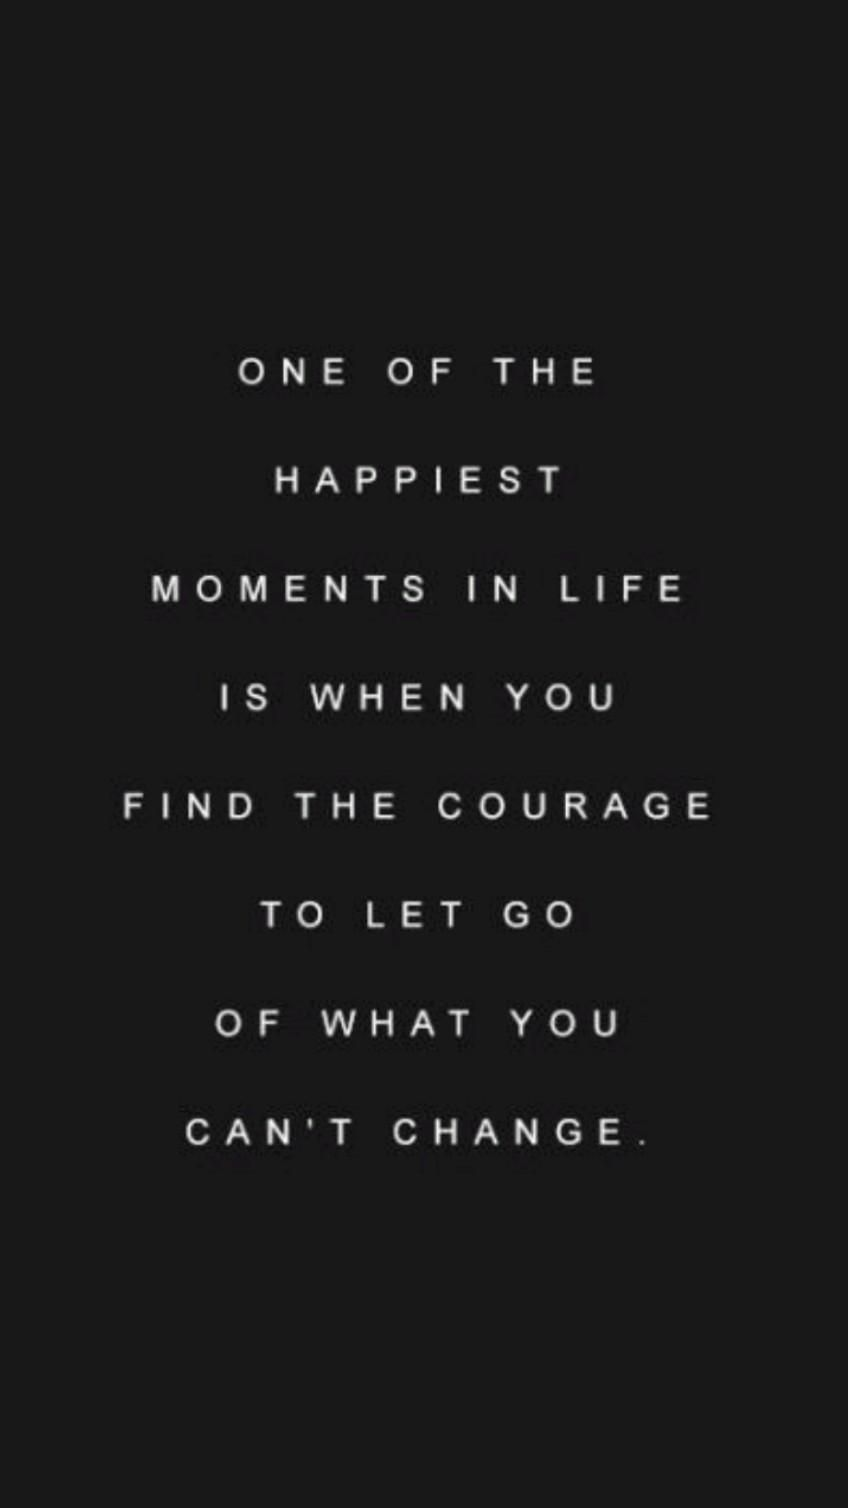 Let go of what does not serve you💥Self Development/Life Coaching